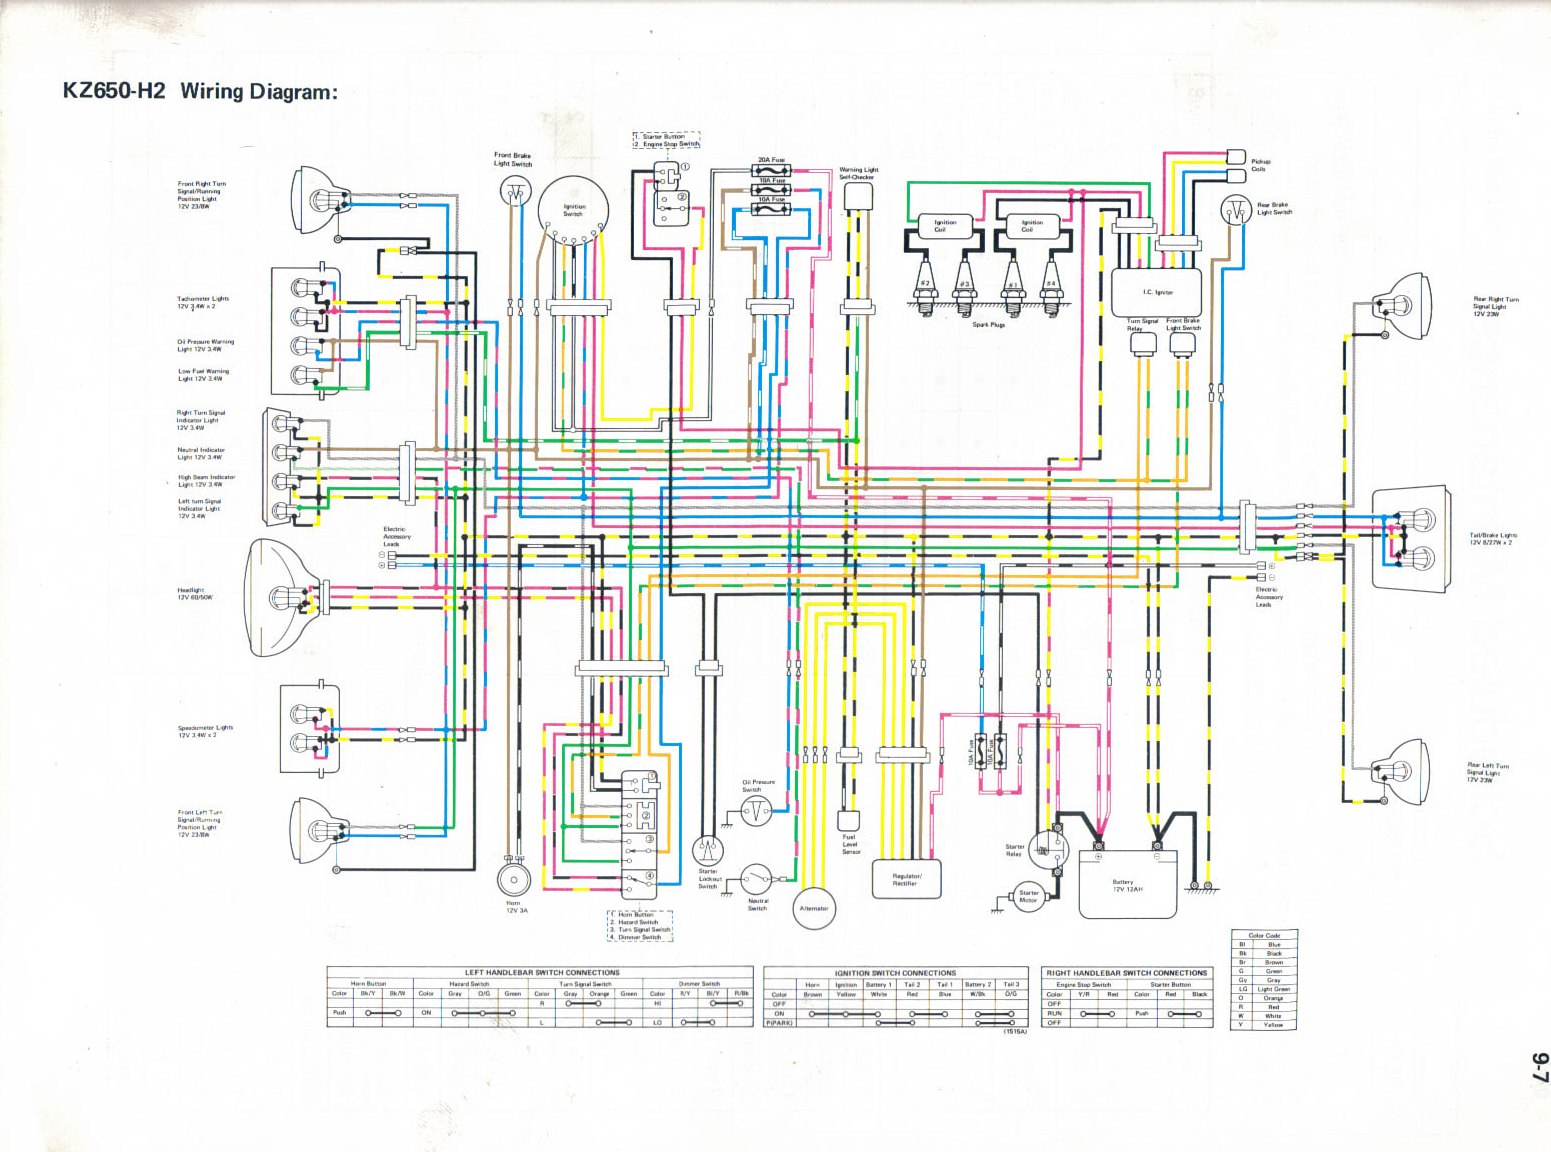 KZ650 H2 kz650 info wiring diagrams kawasaki wiring diagram at gsmx.co